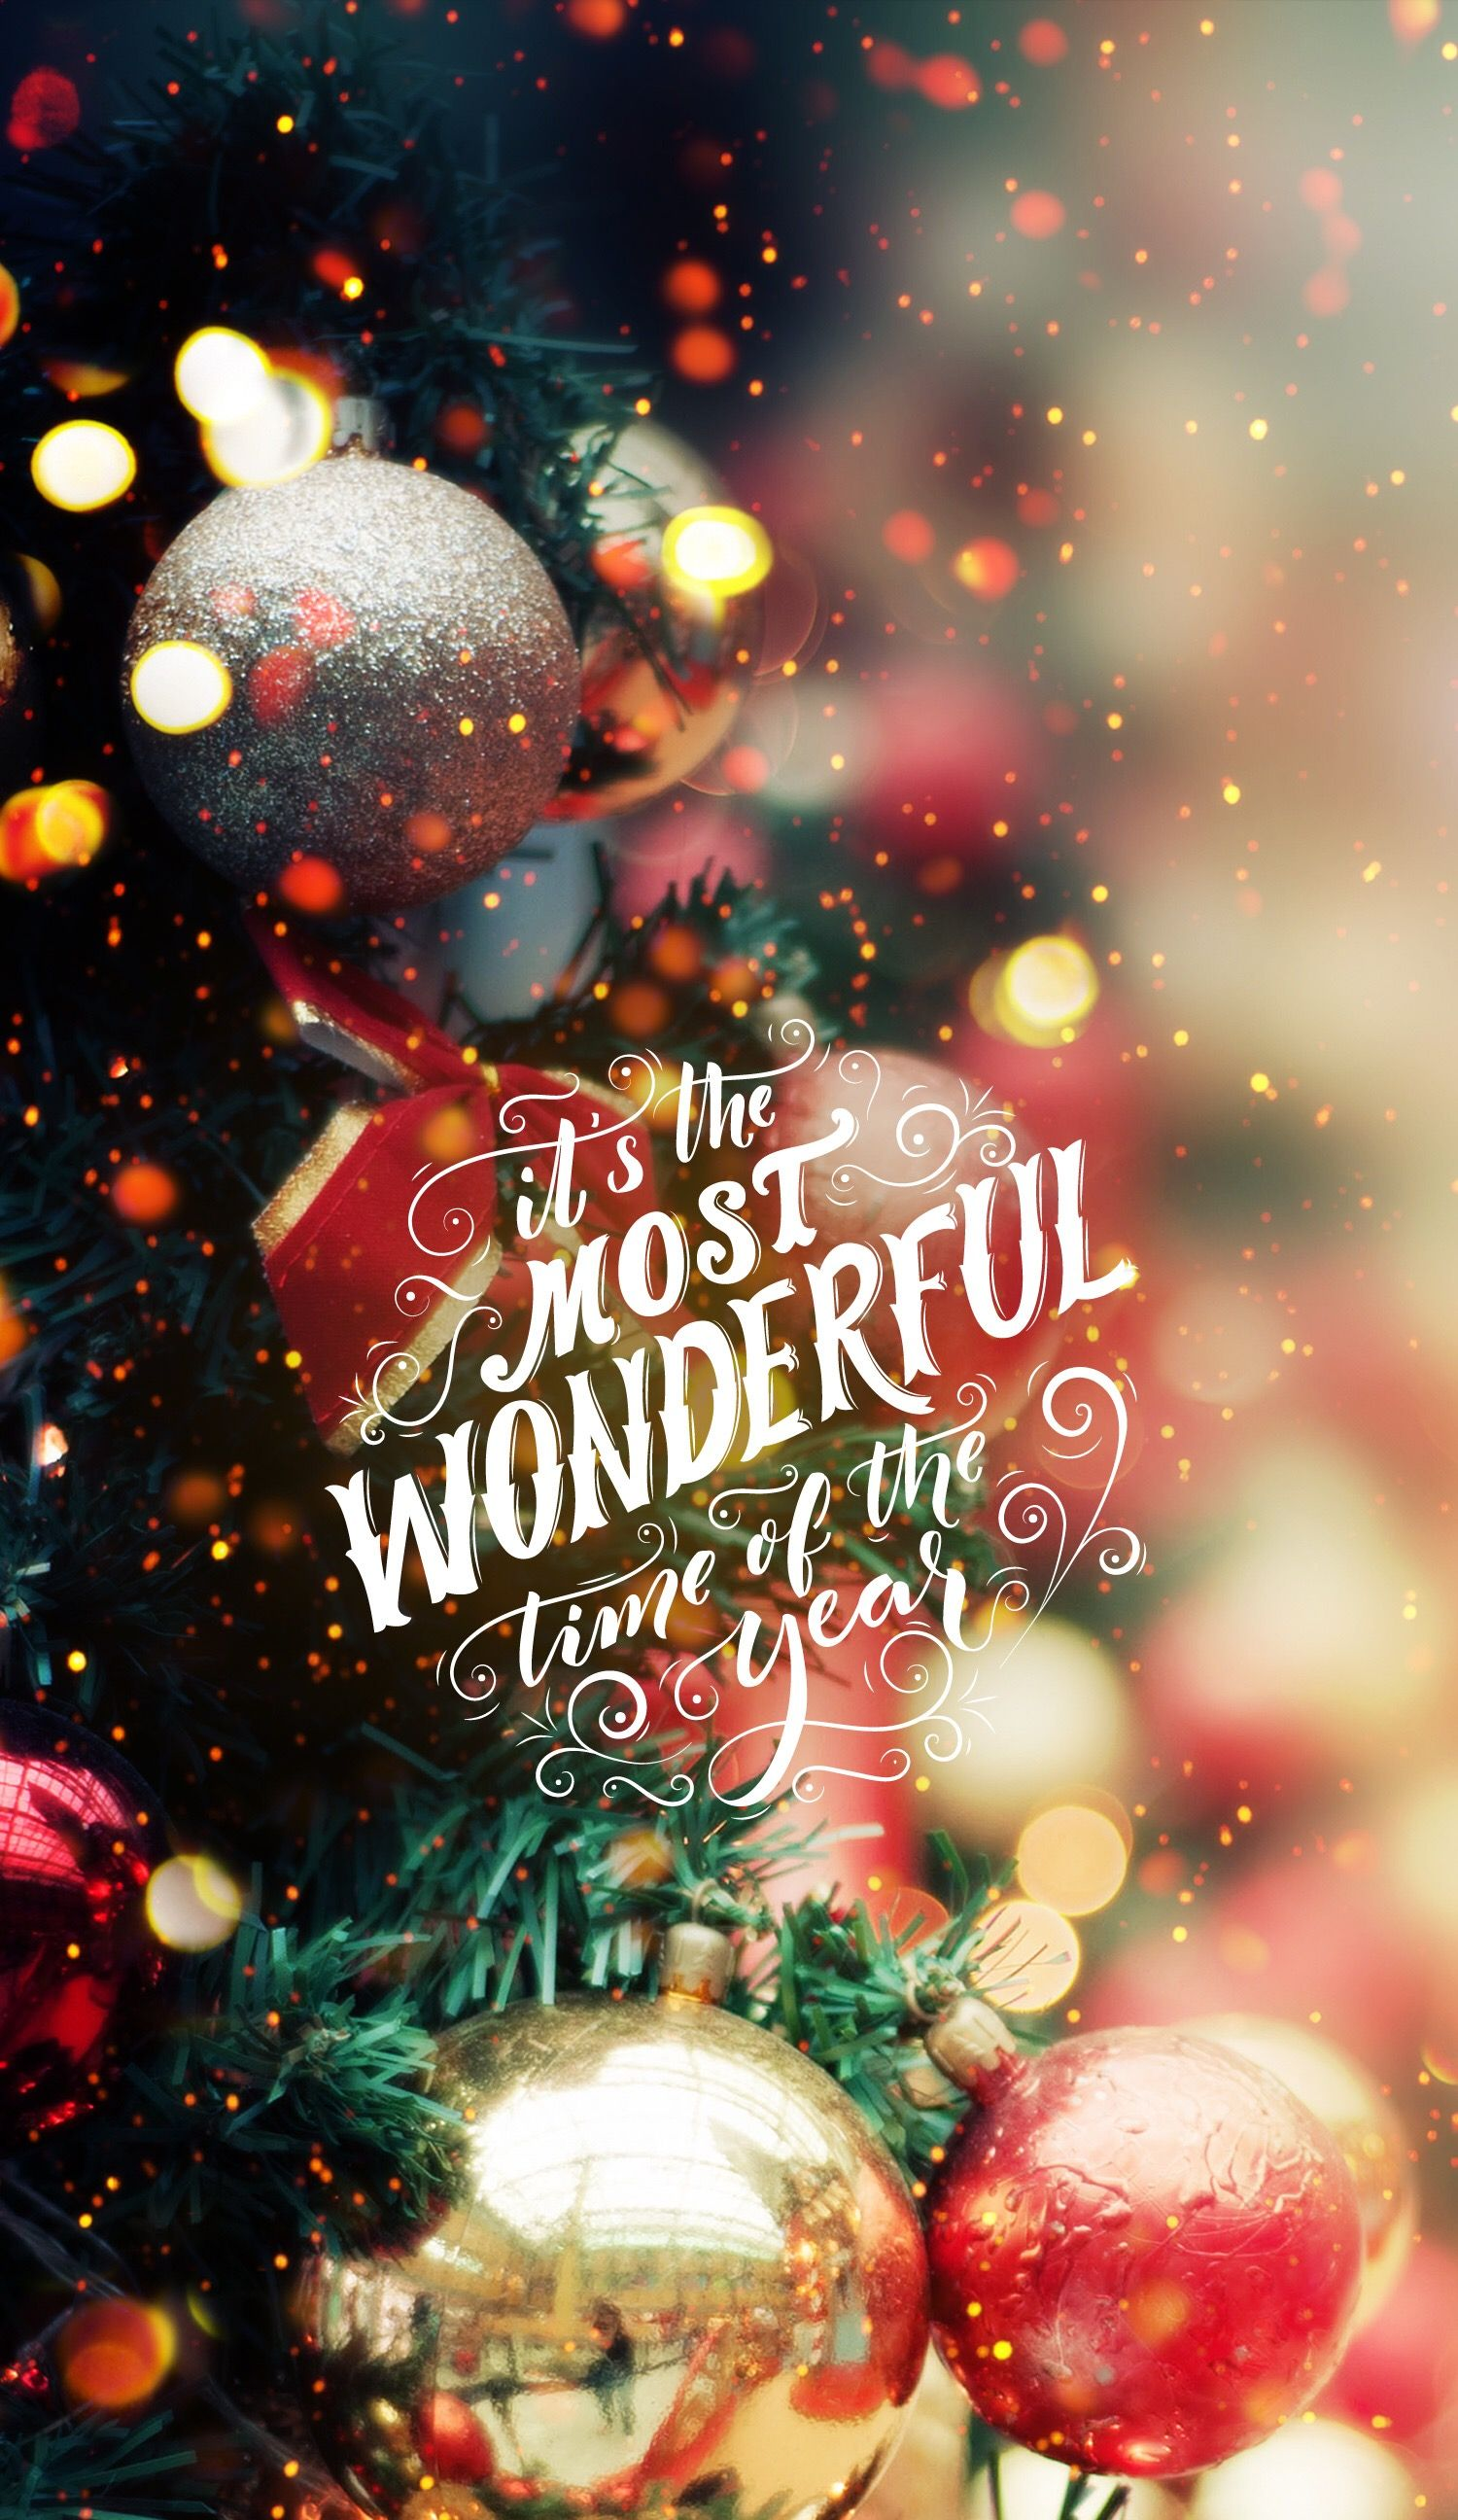 Save and set   ilustraciones   Pinterest   Wallpaper  Wonderful time     It s the most wonderful time of the year  Christmas iPhone android  cellphone lock screen wallpaper background  Christmas tree lights ornaments